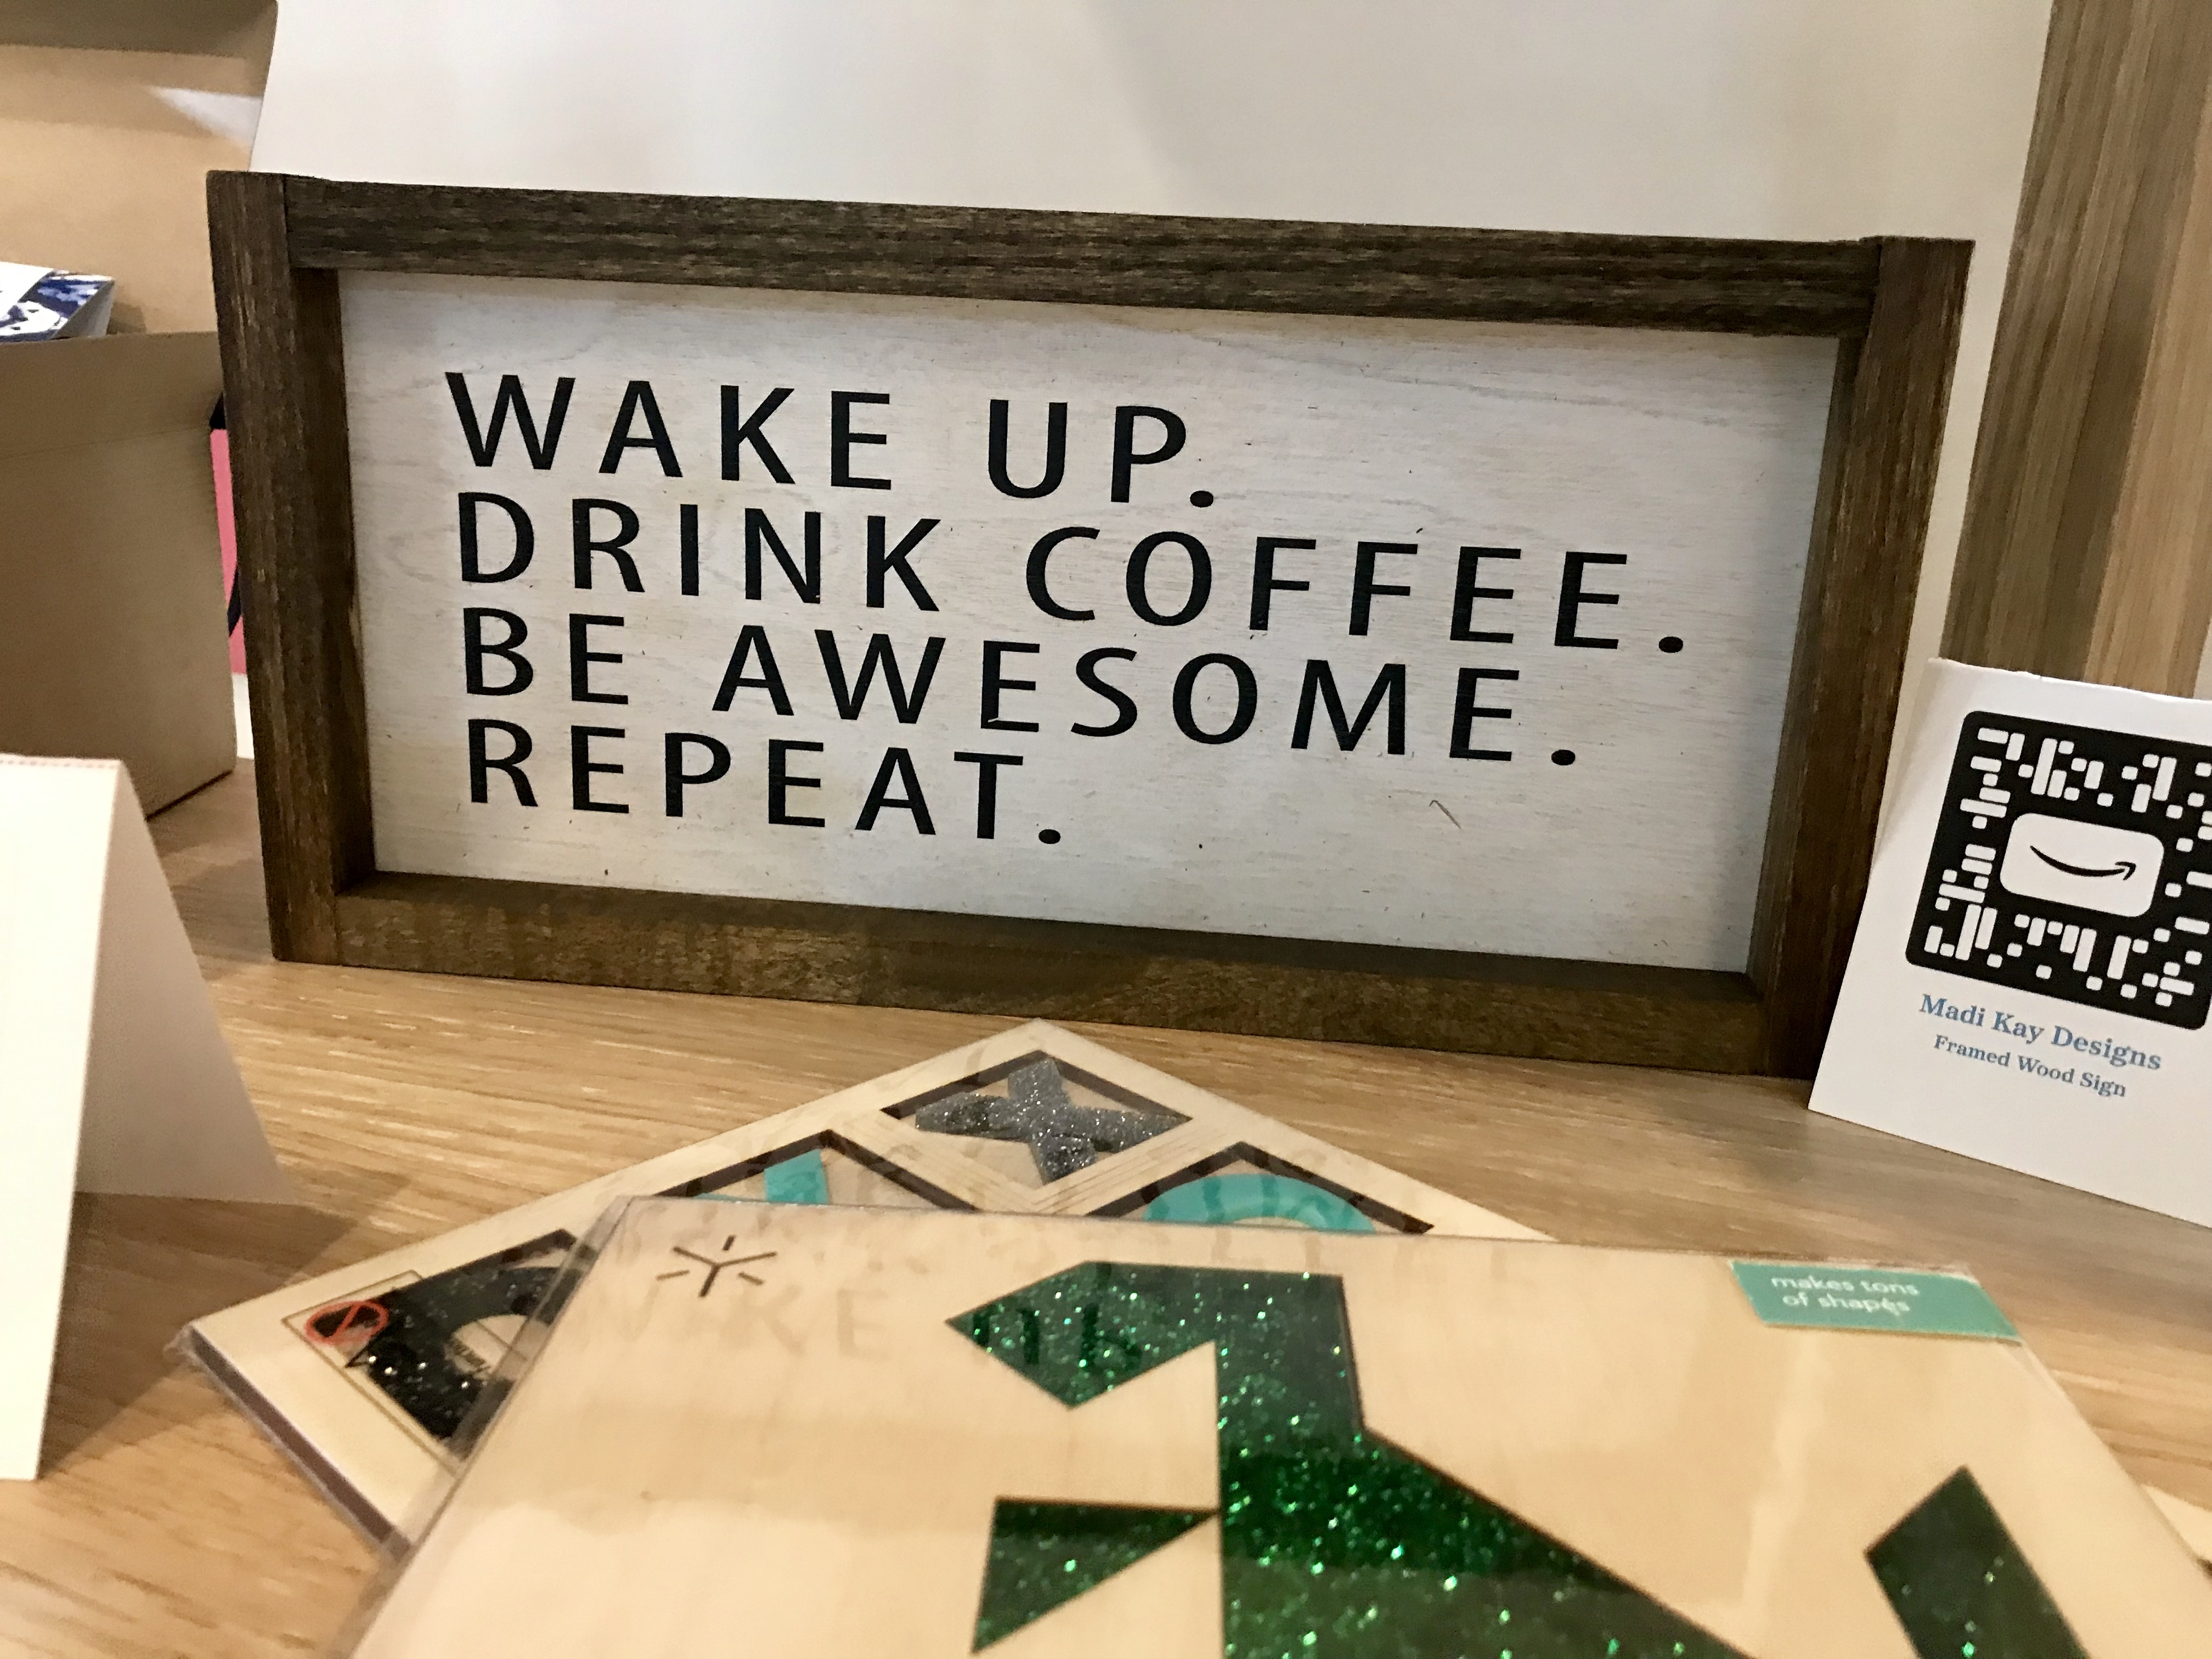 Wake up. Drink coffee. Be awesome. Repeat. sign available from Amazon Handmade